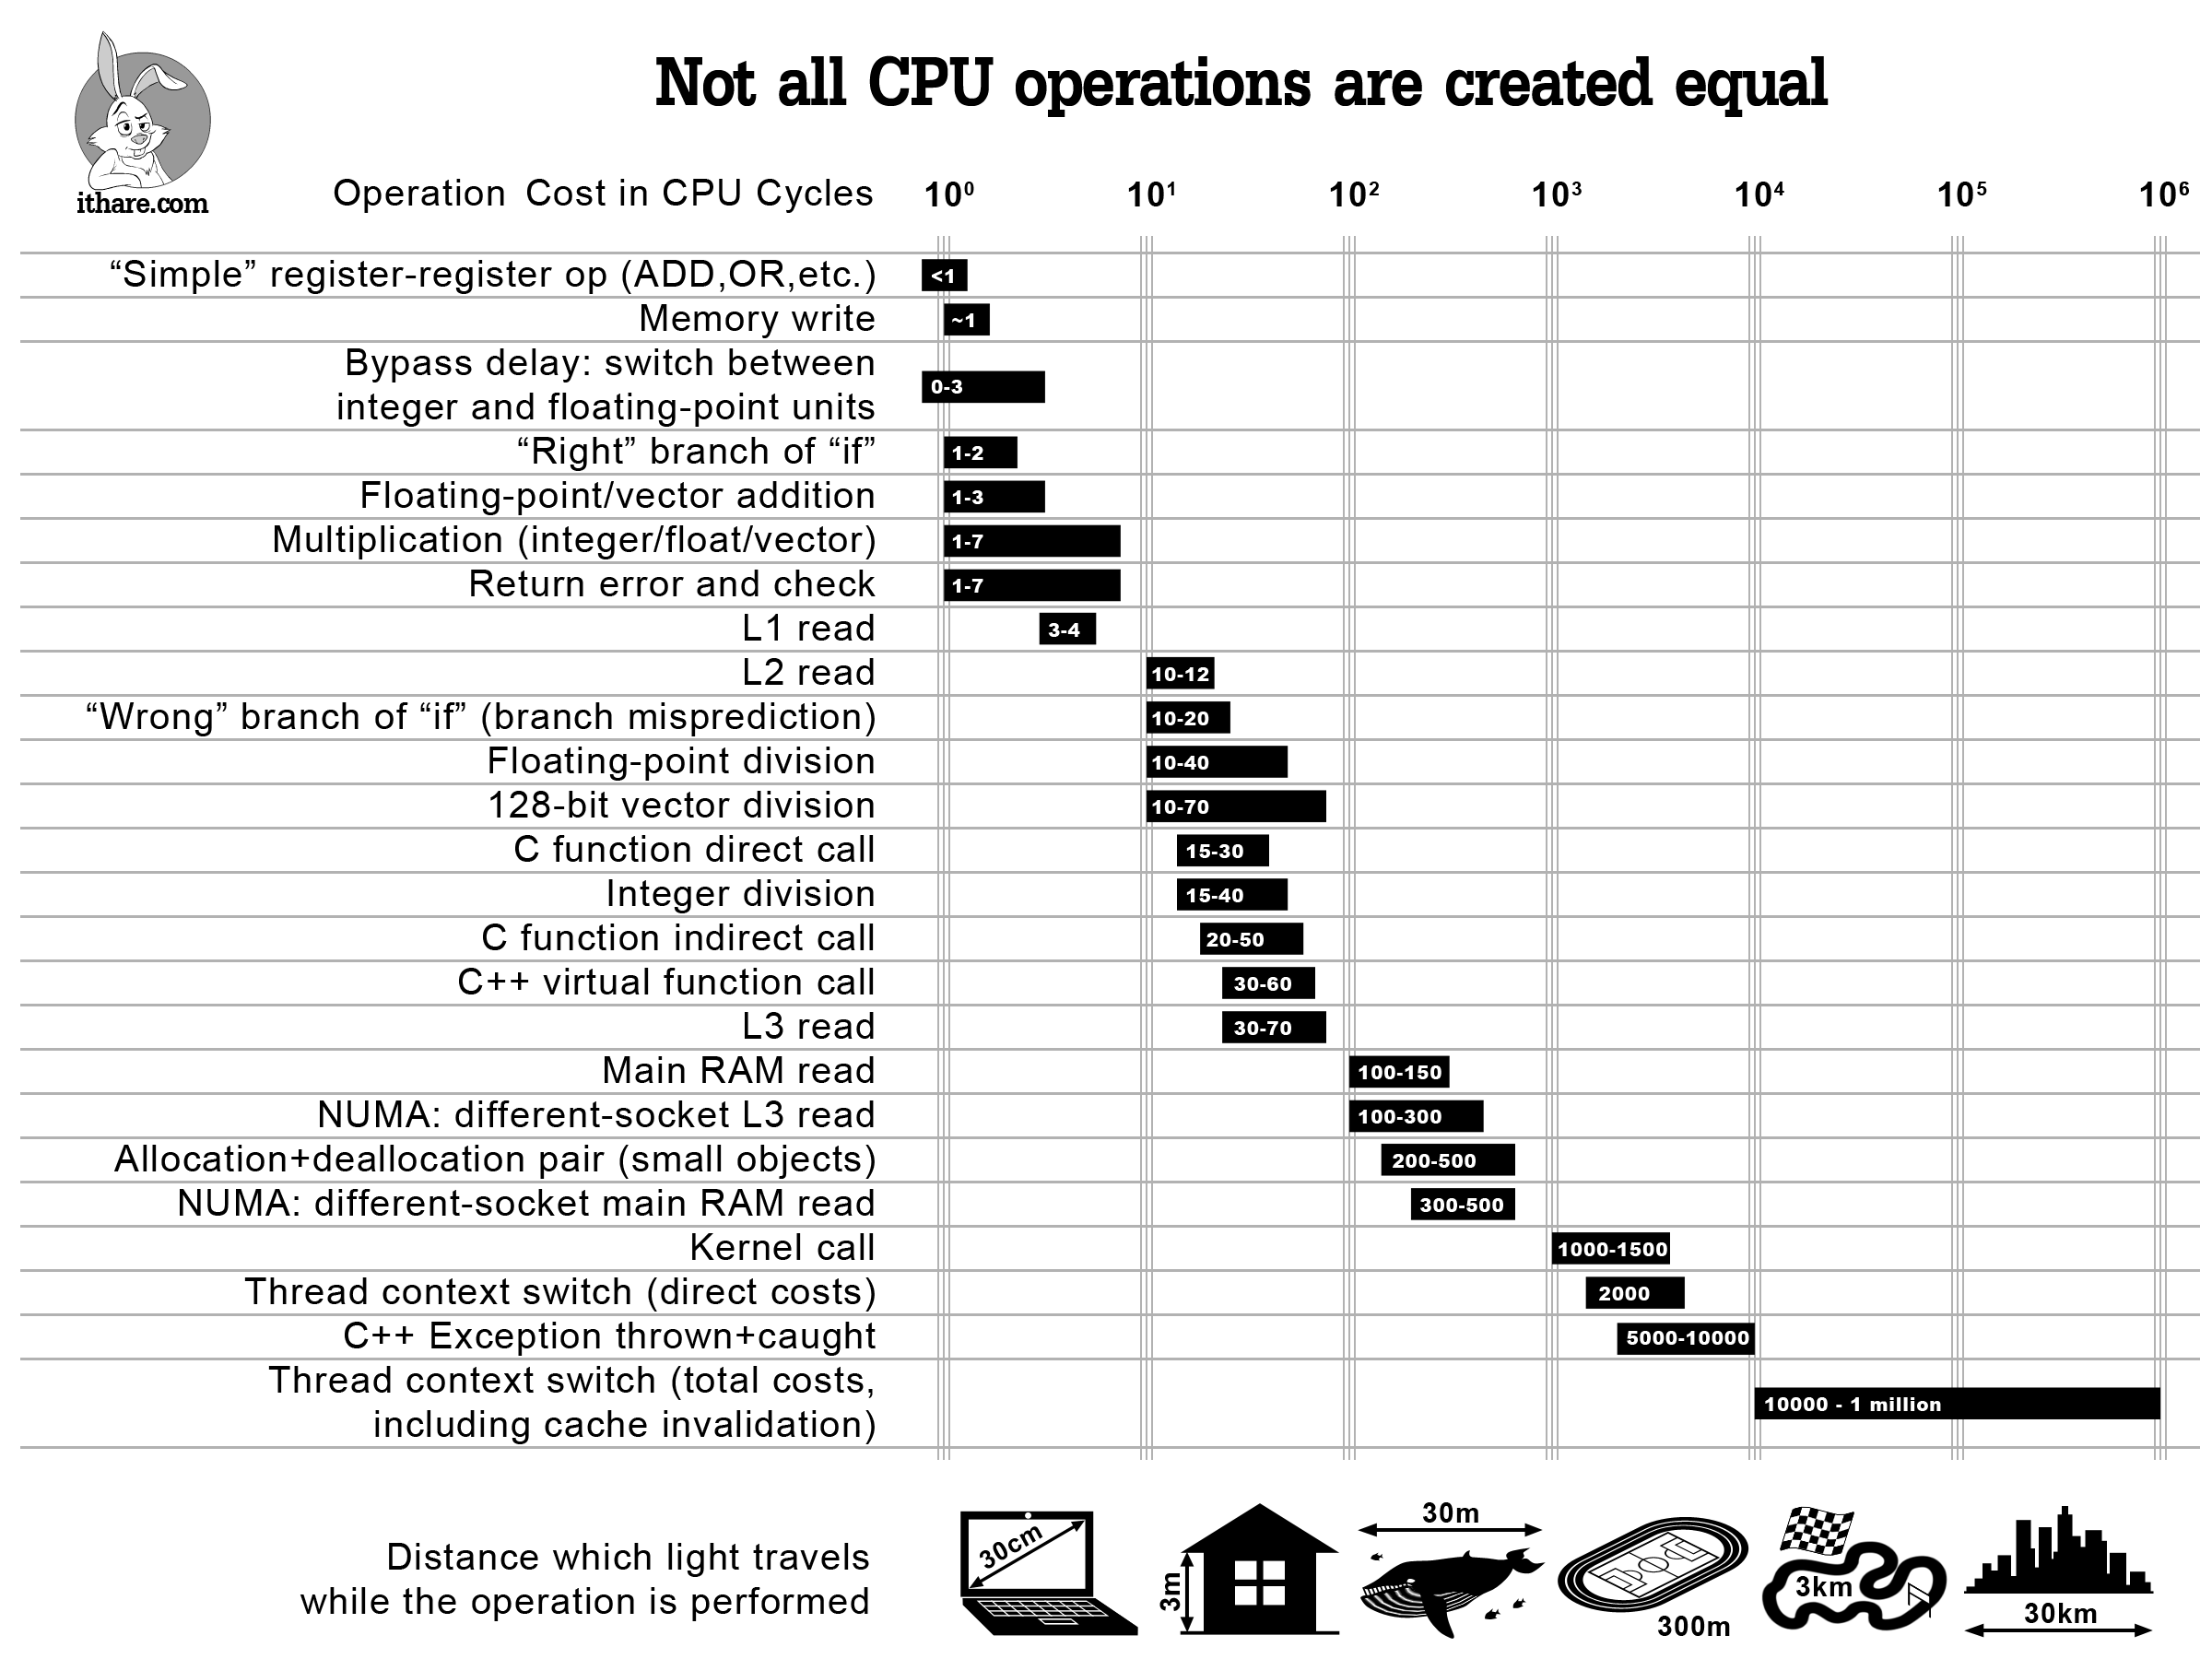 Not all CPU operations are created equal